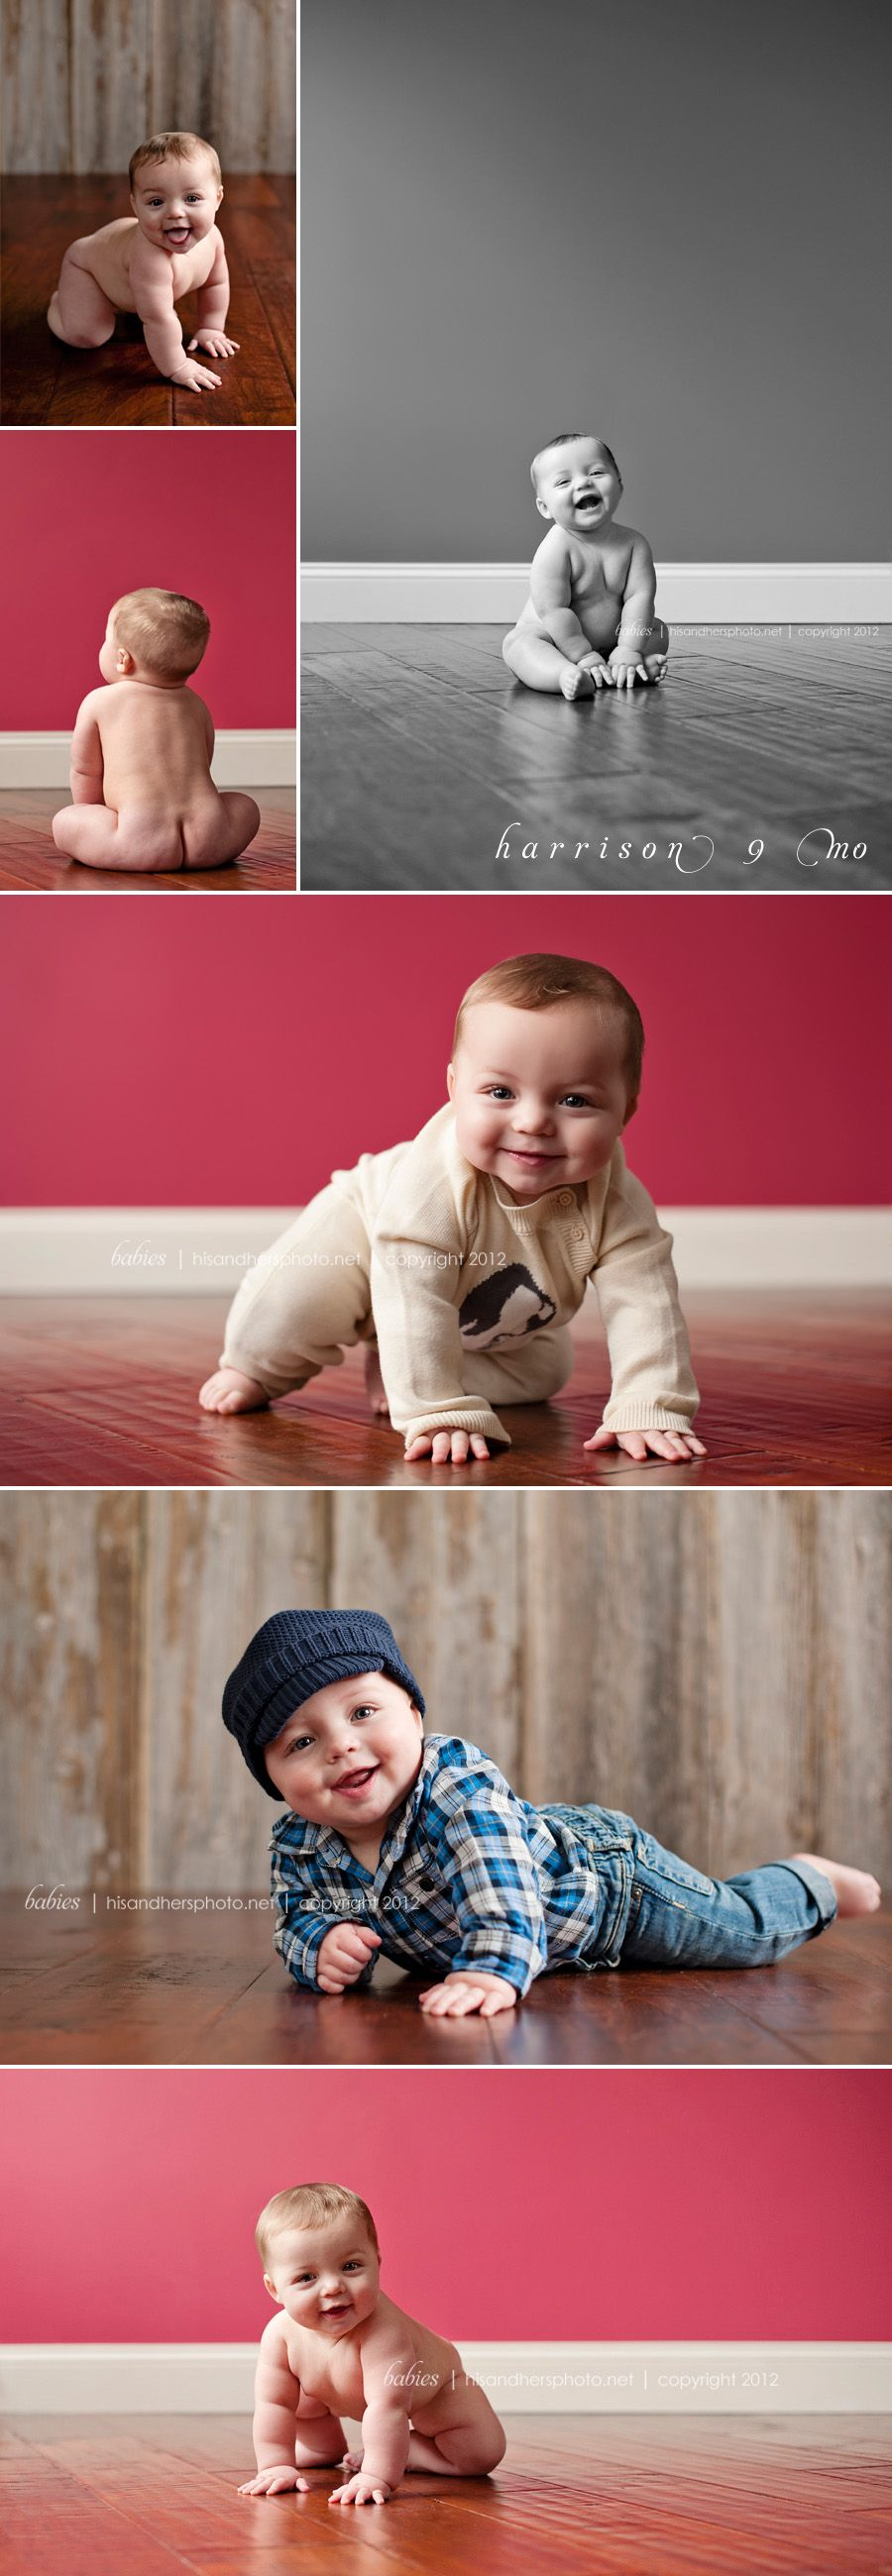 Des Moines, Iowa Baby & Children's Photographer | Harrison, 9 months old